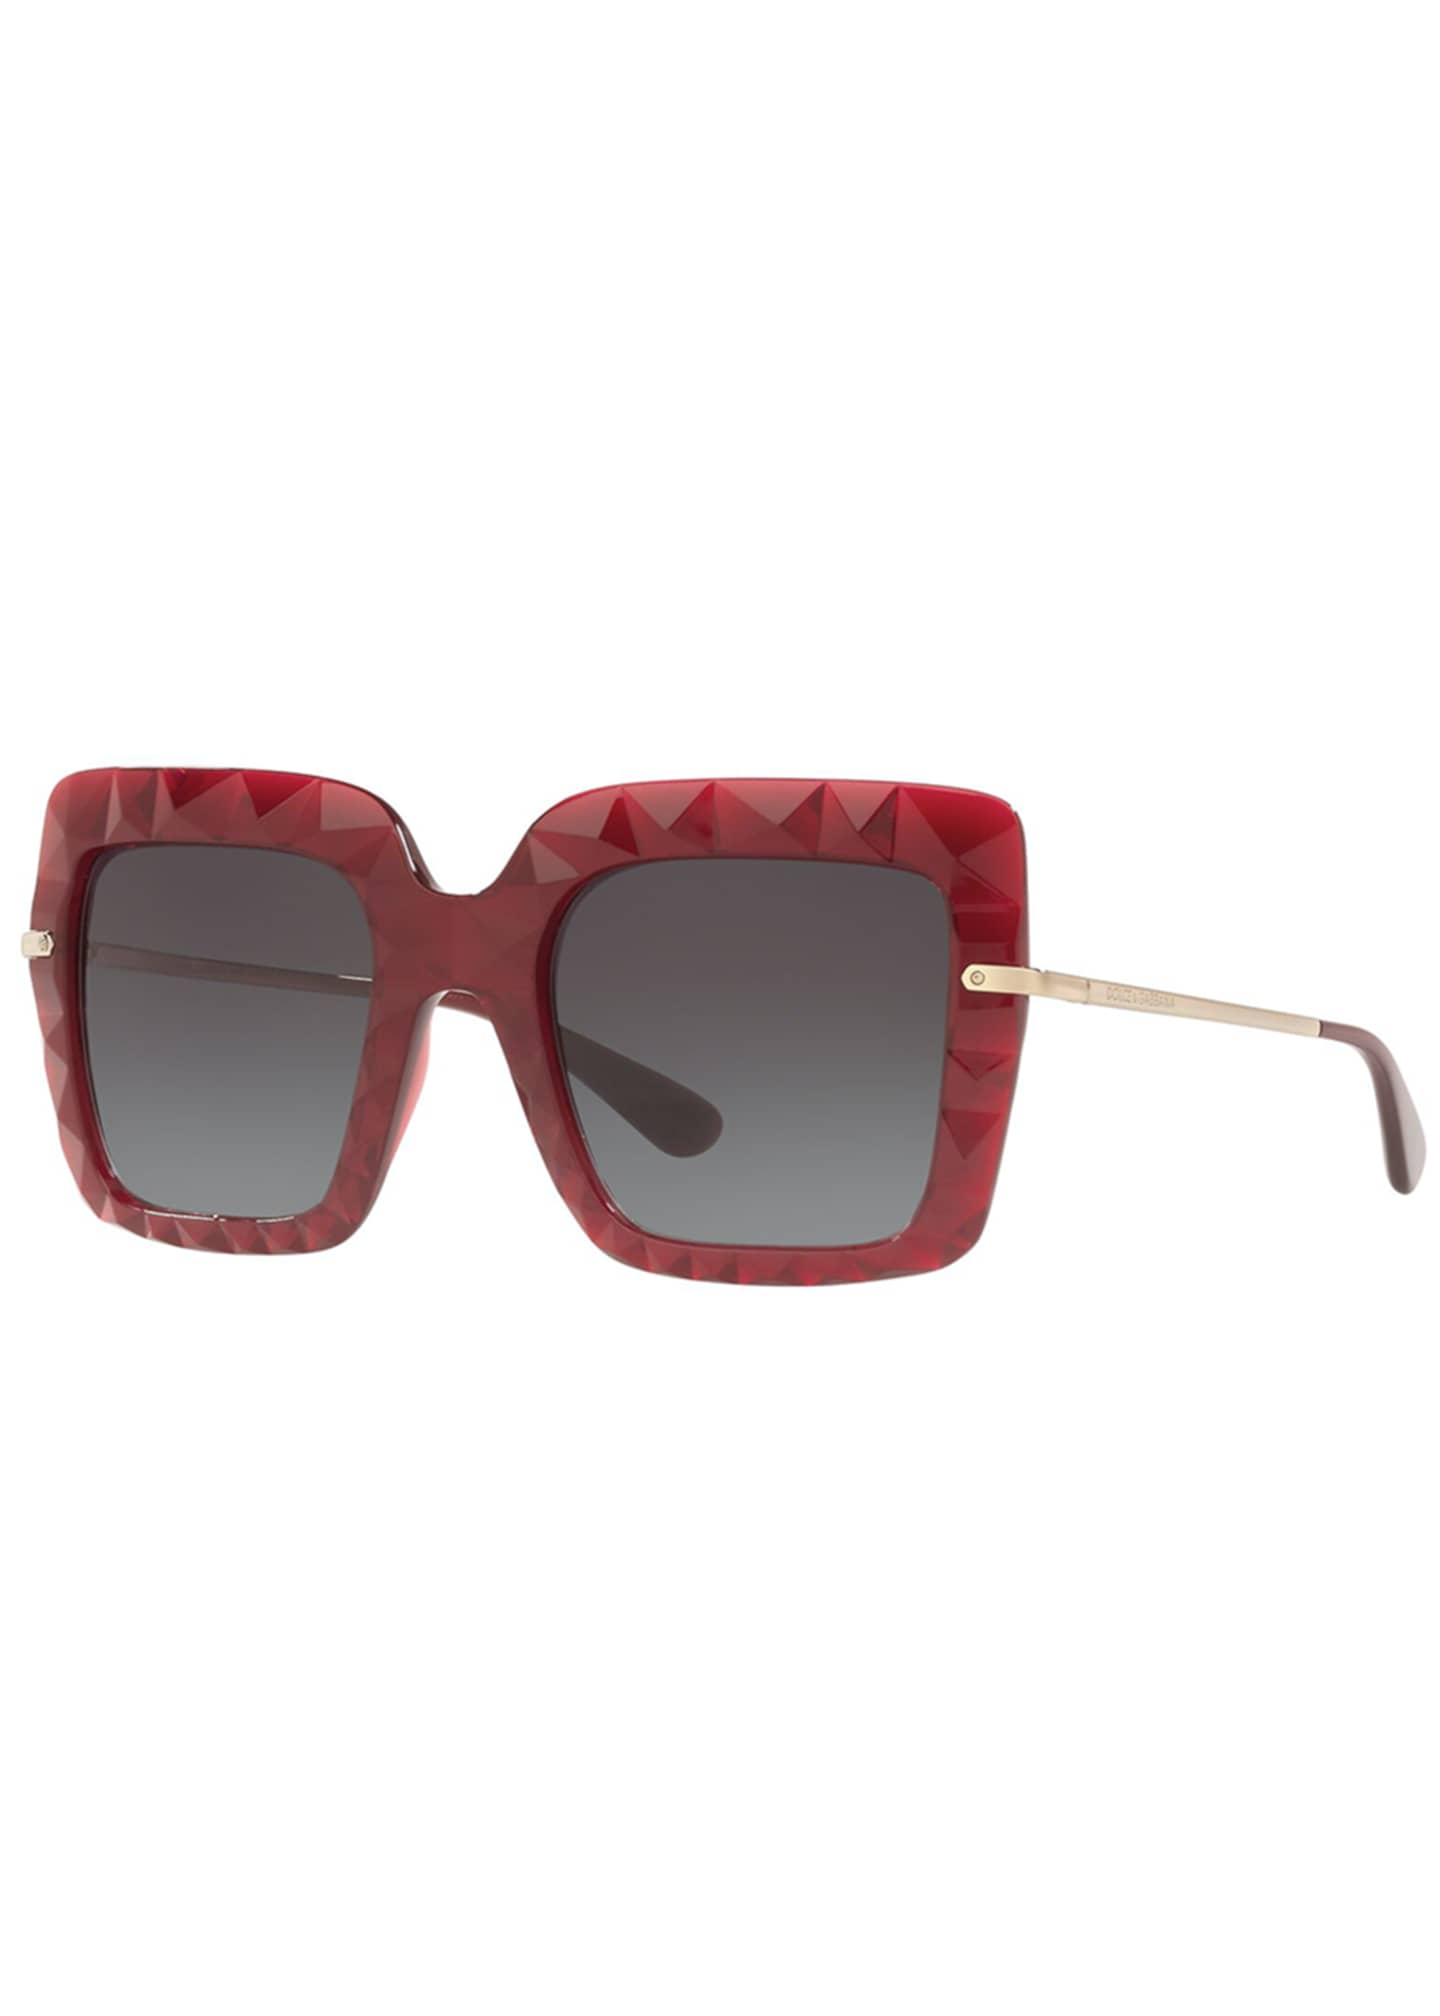 Dolce & Gabbana Square Faceted Sunglasses